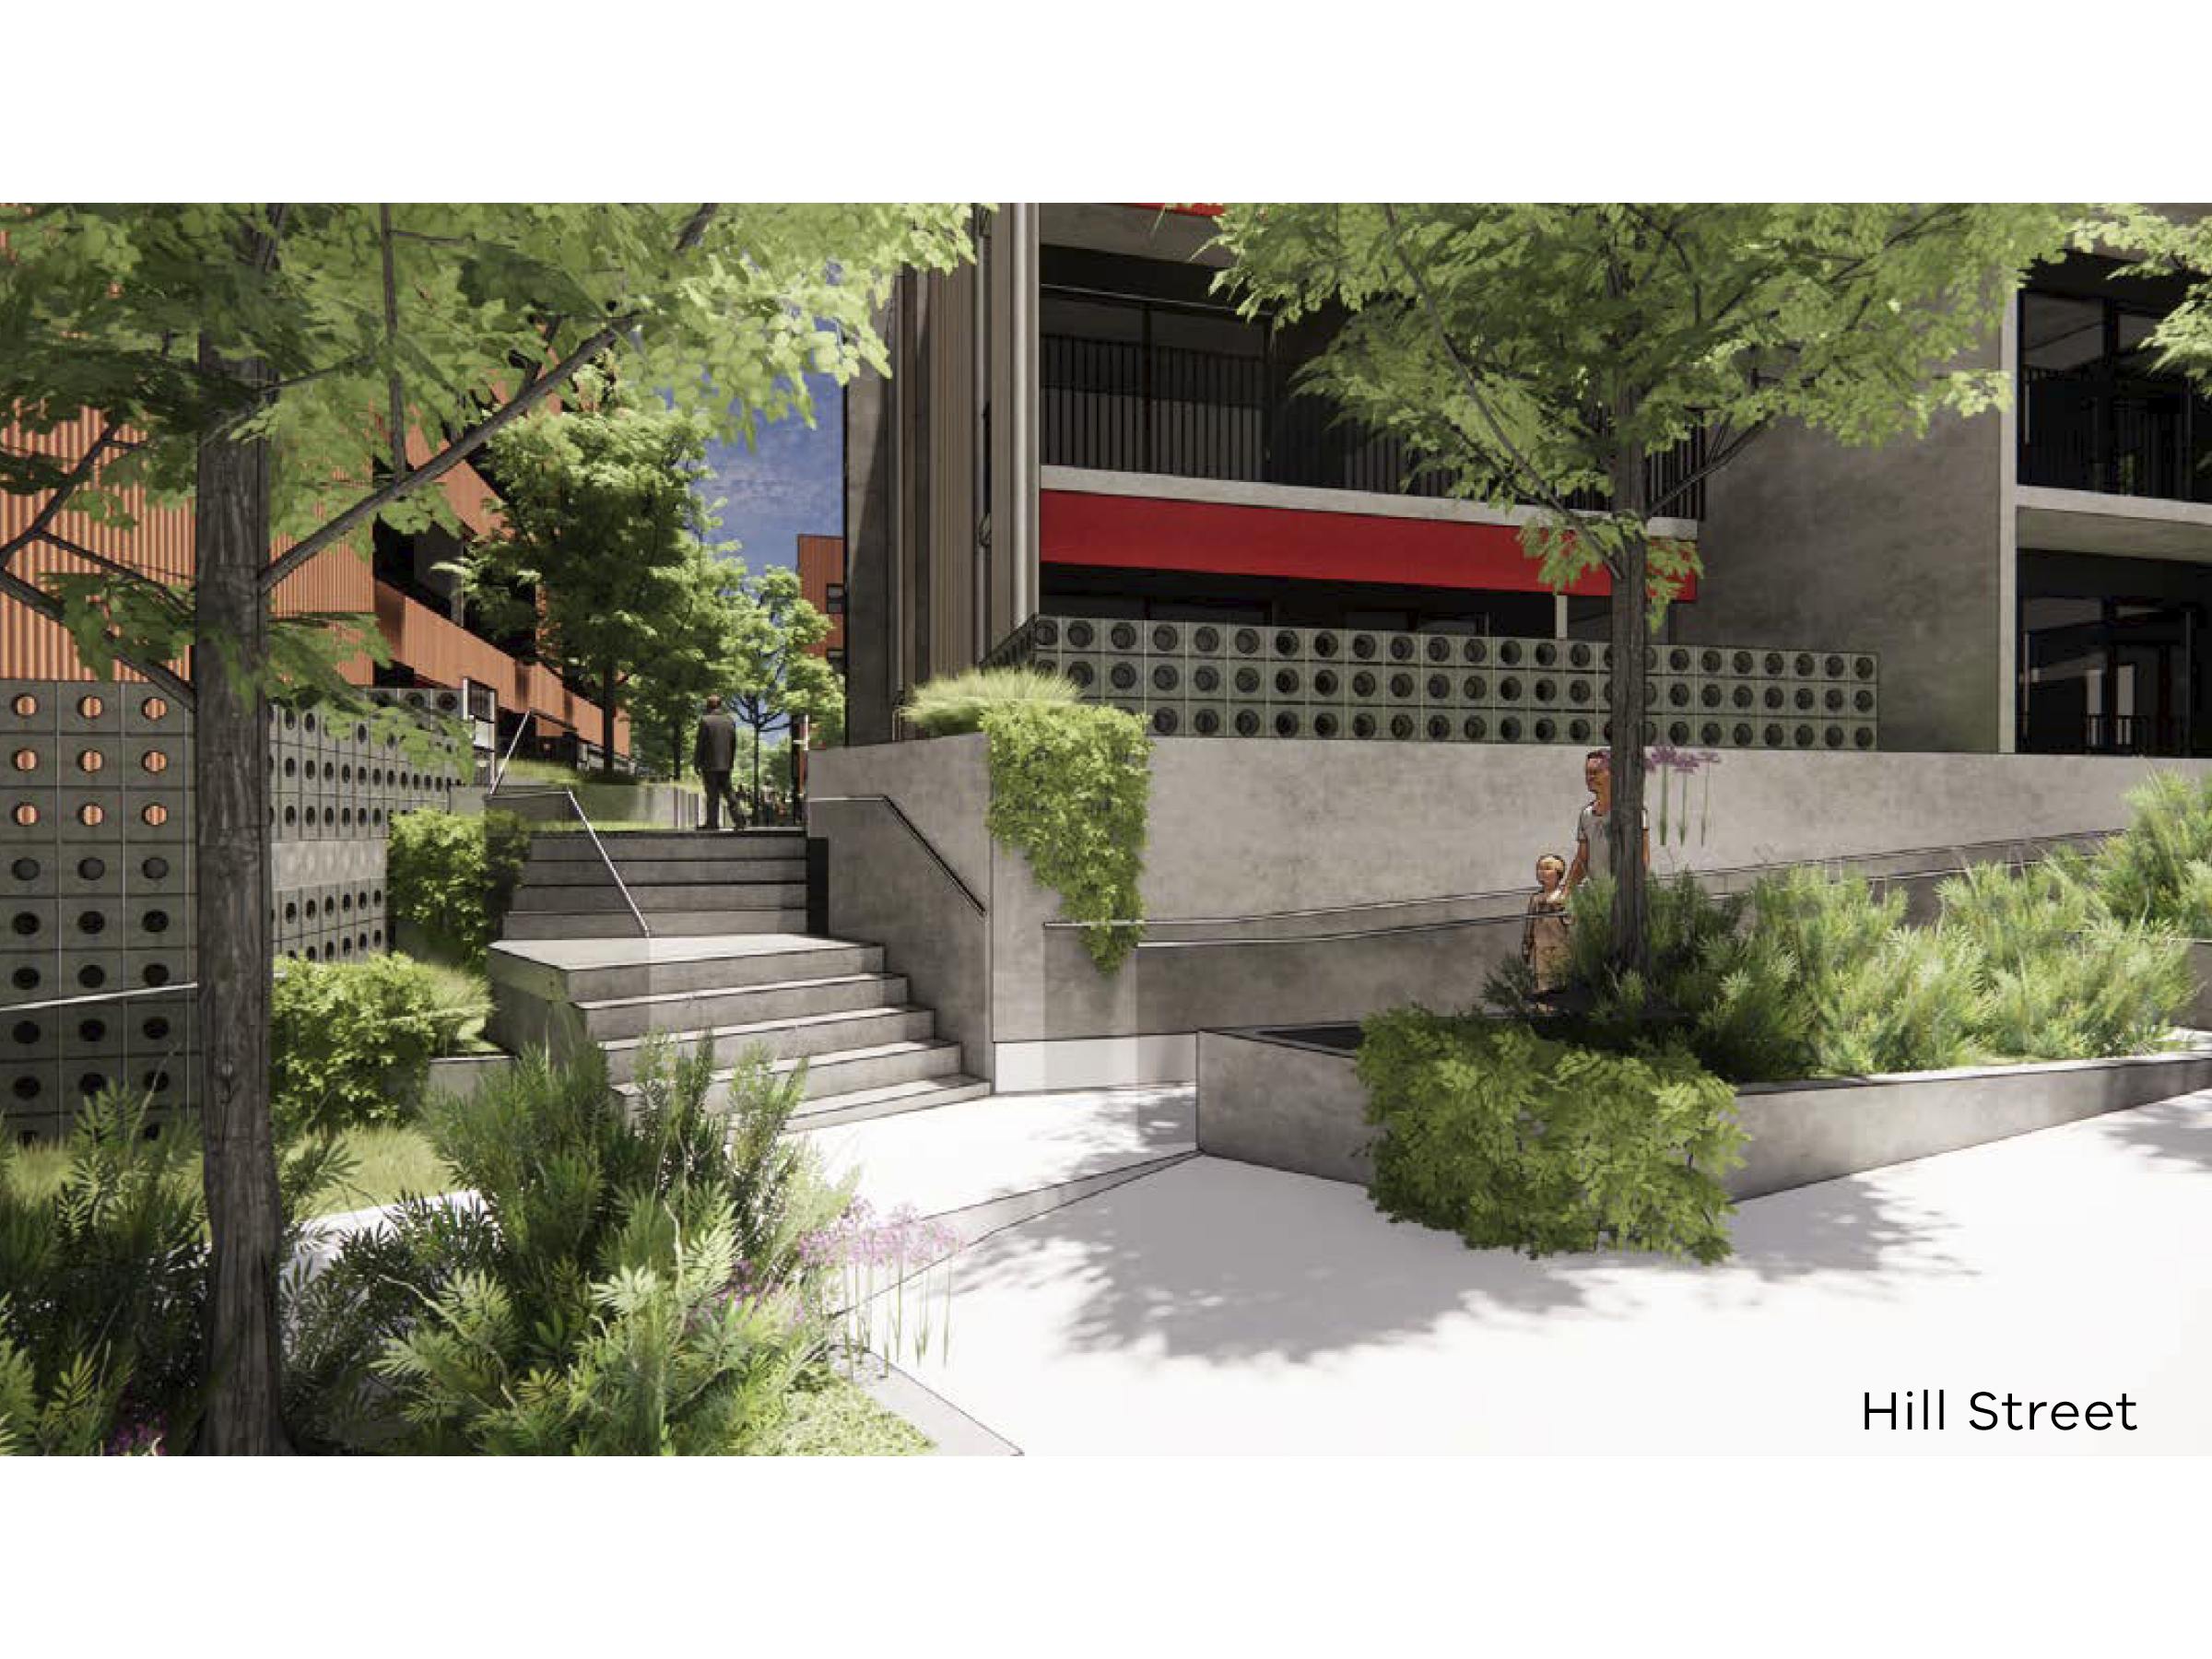 Artist impression of the new development showing a staircase to access the courtyard from Hill Street